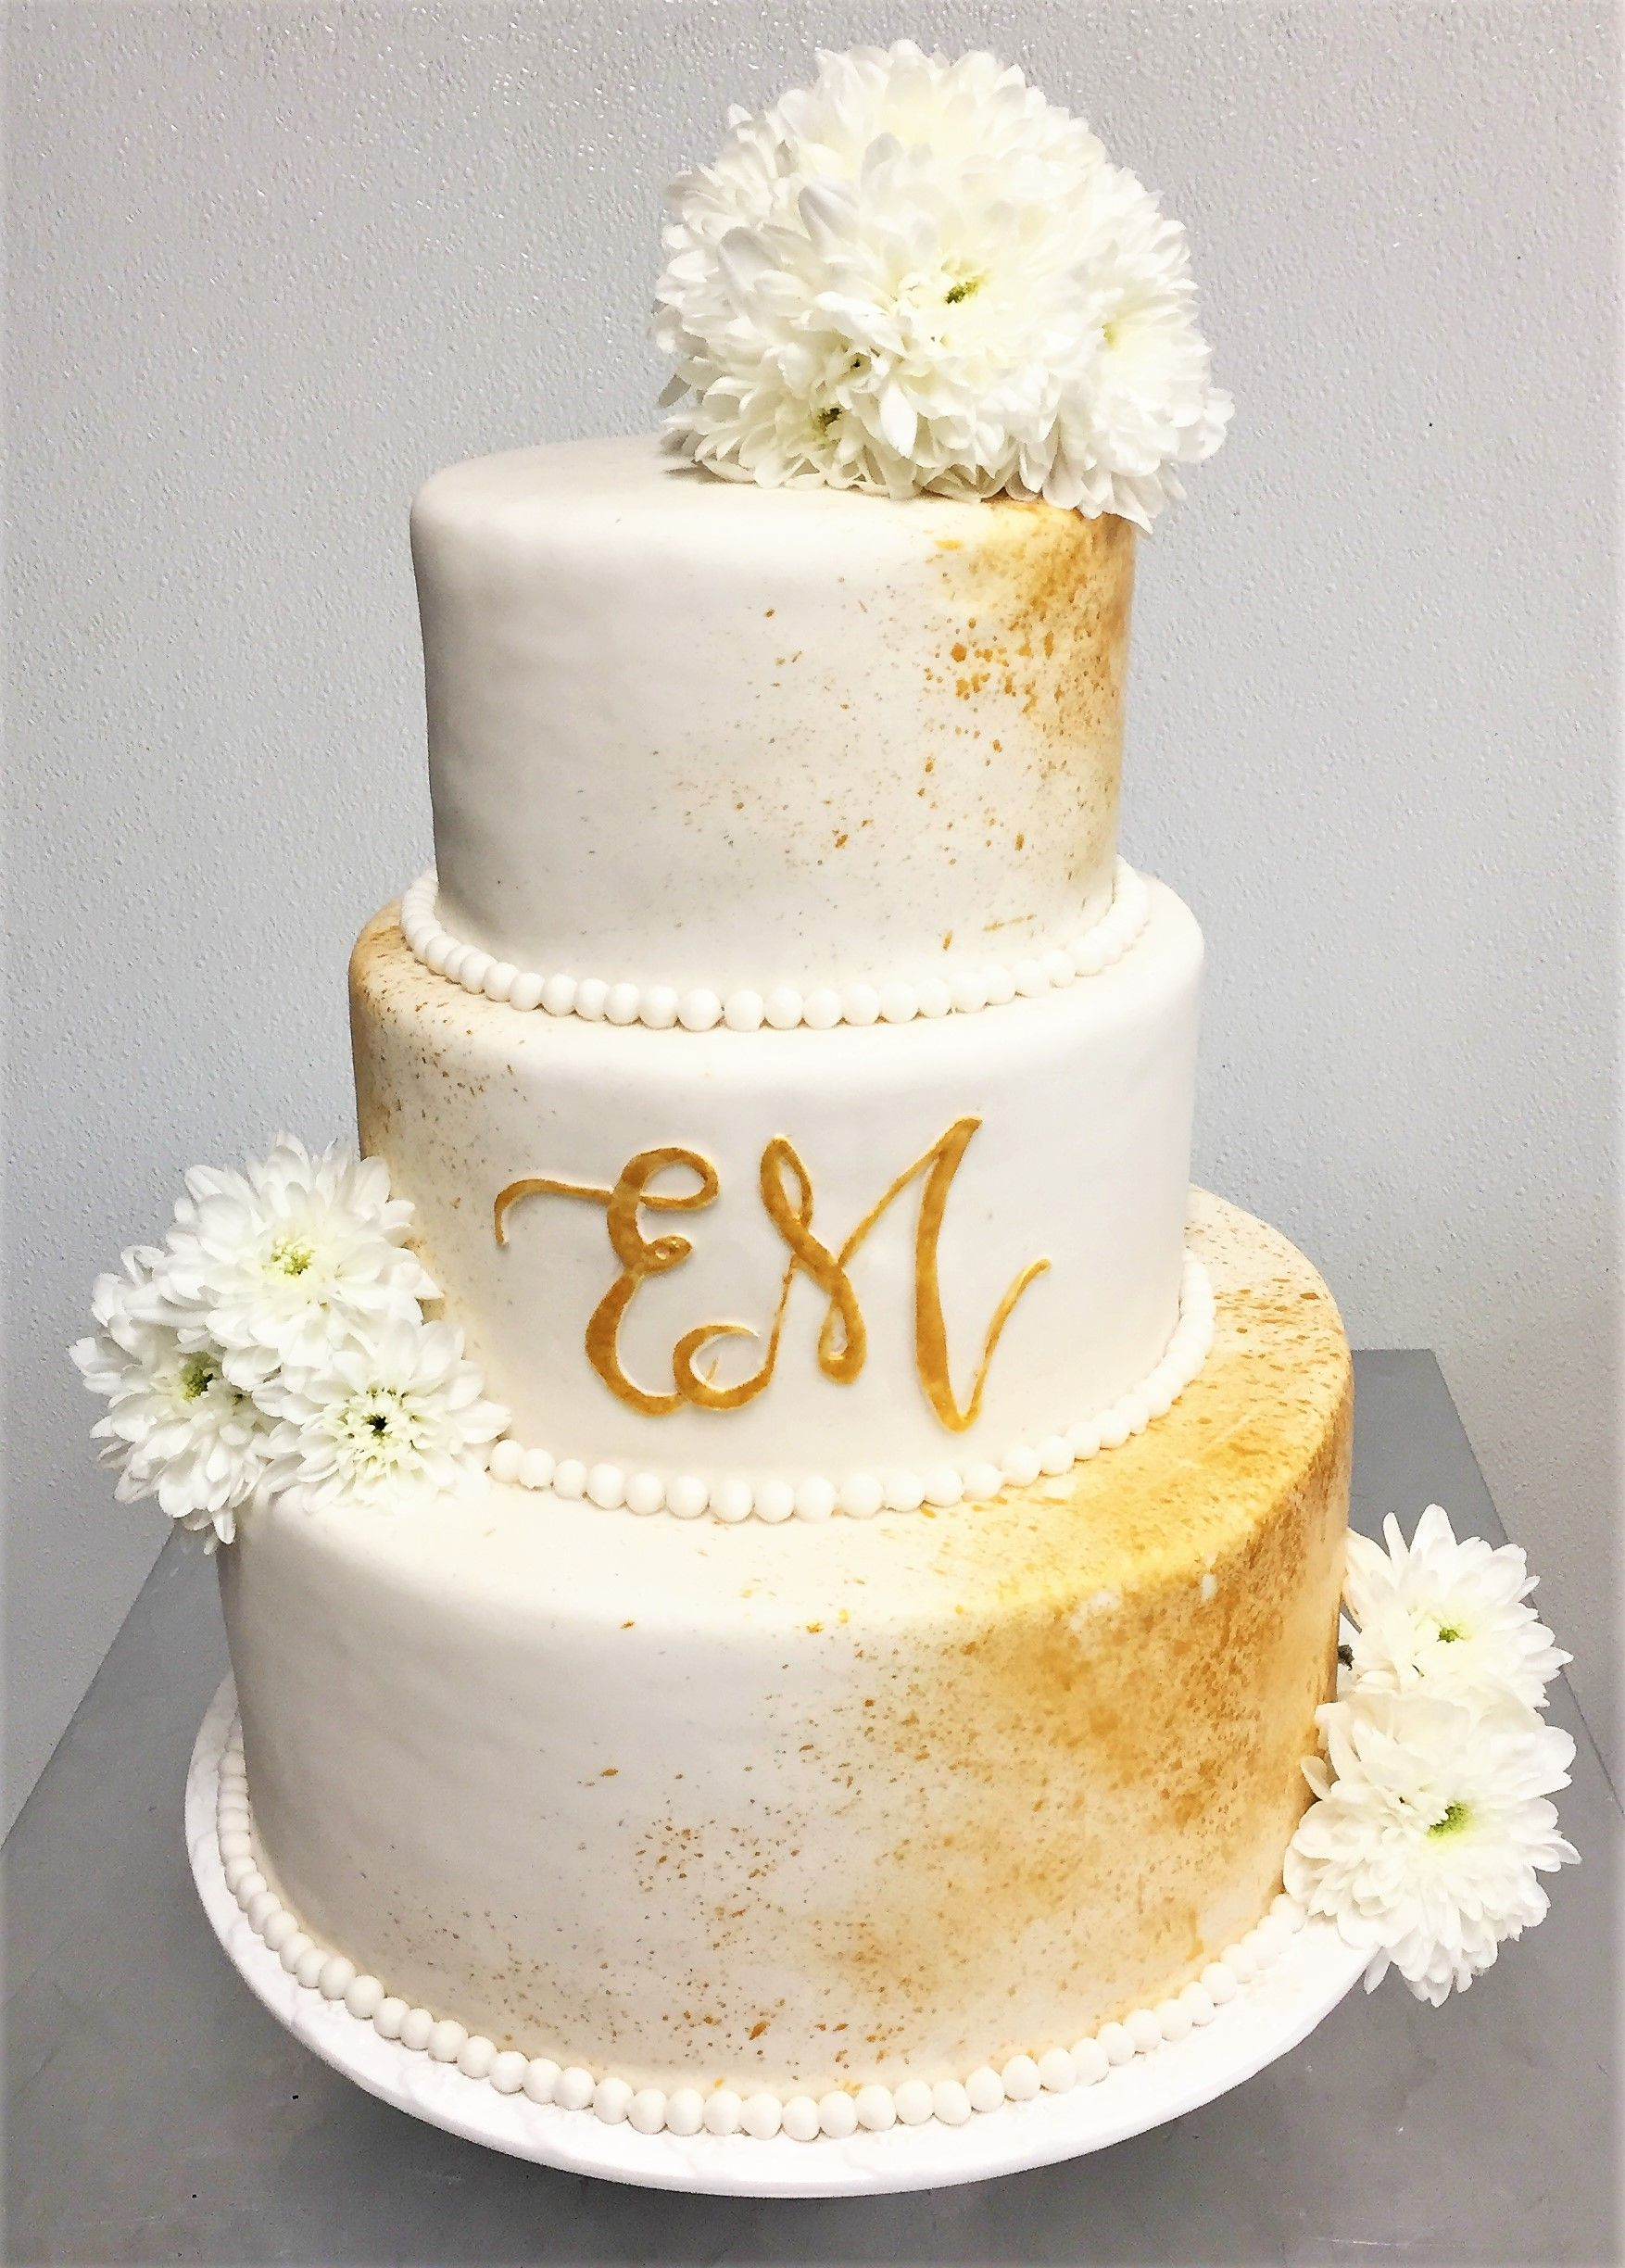 Wedding cakes can be simple and elegant with a touch of gold ...